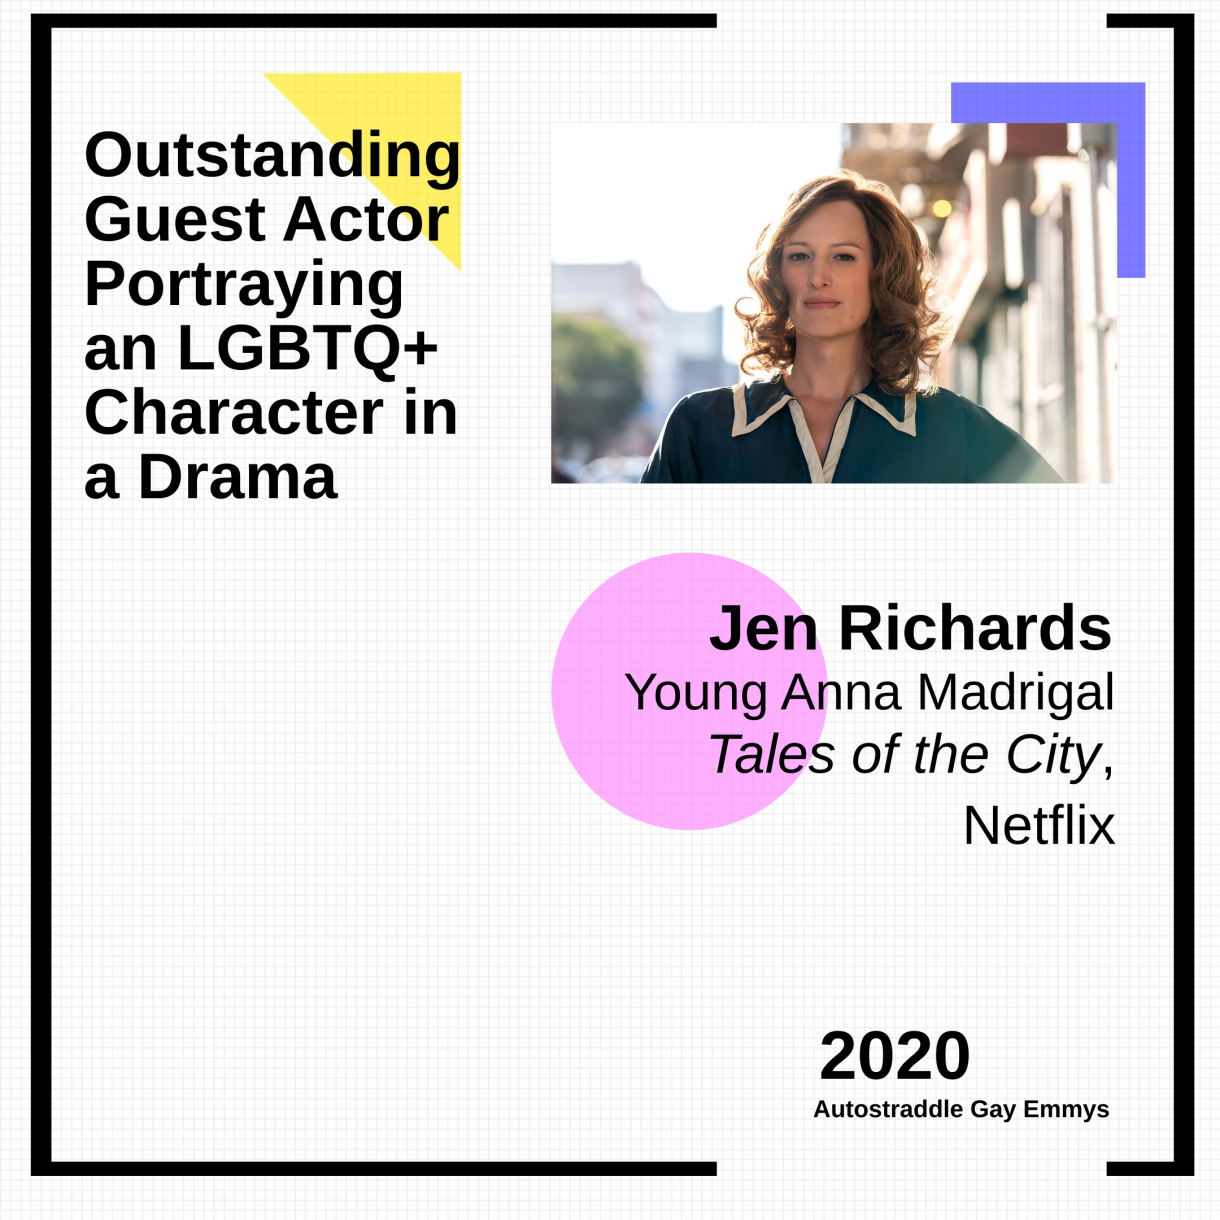 Graphic announcing Outstanding Guest Actor playing an LGBTQ+ Character in a Drama Series: Jen Richards as Young Anna Madrigal, Tales of the City